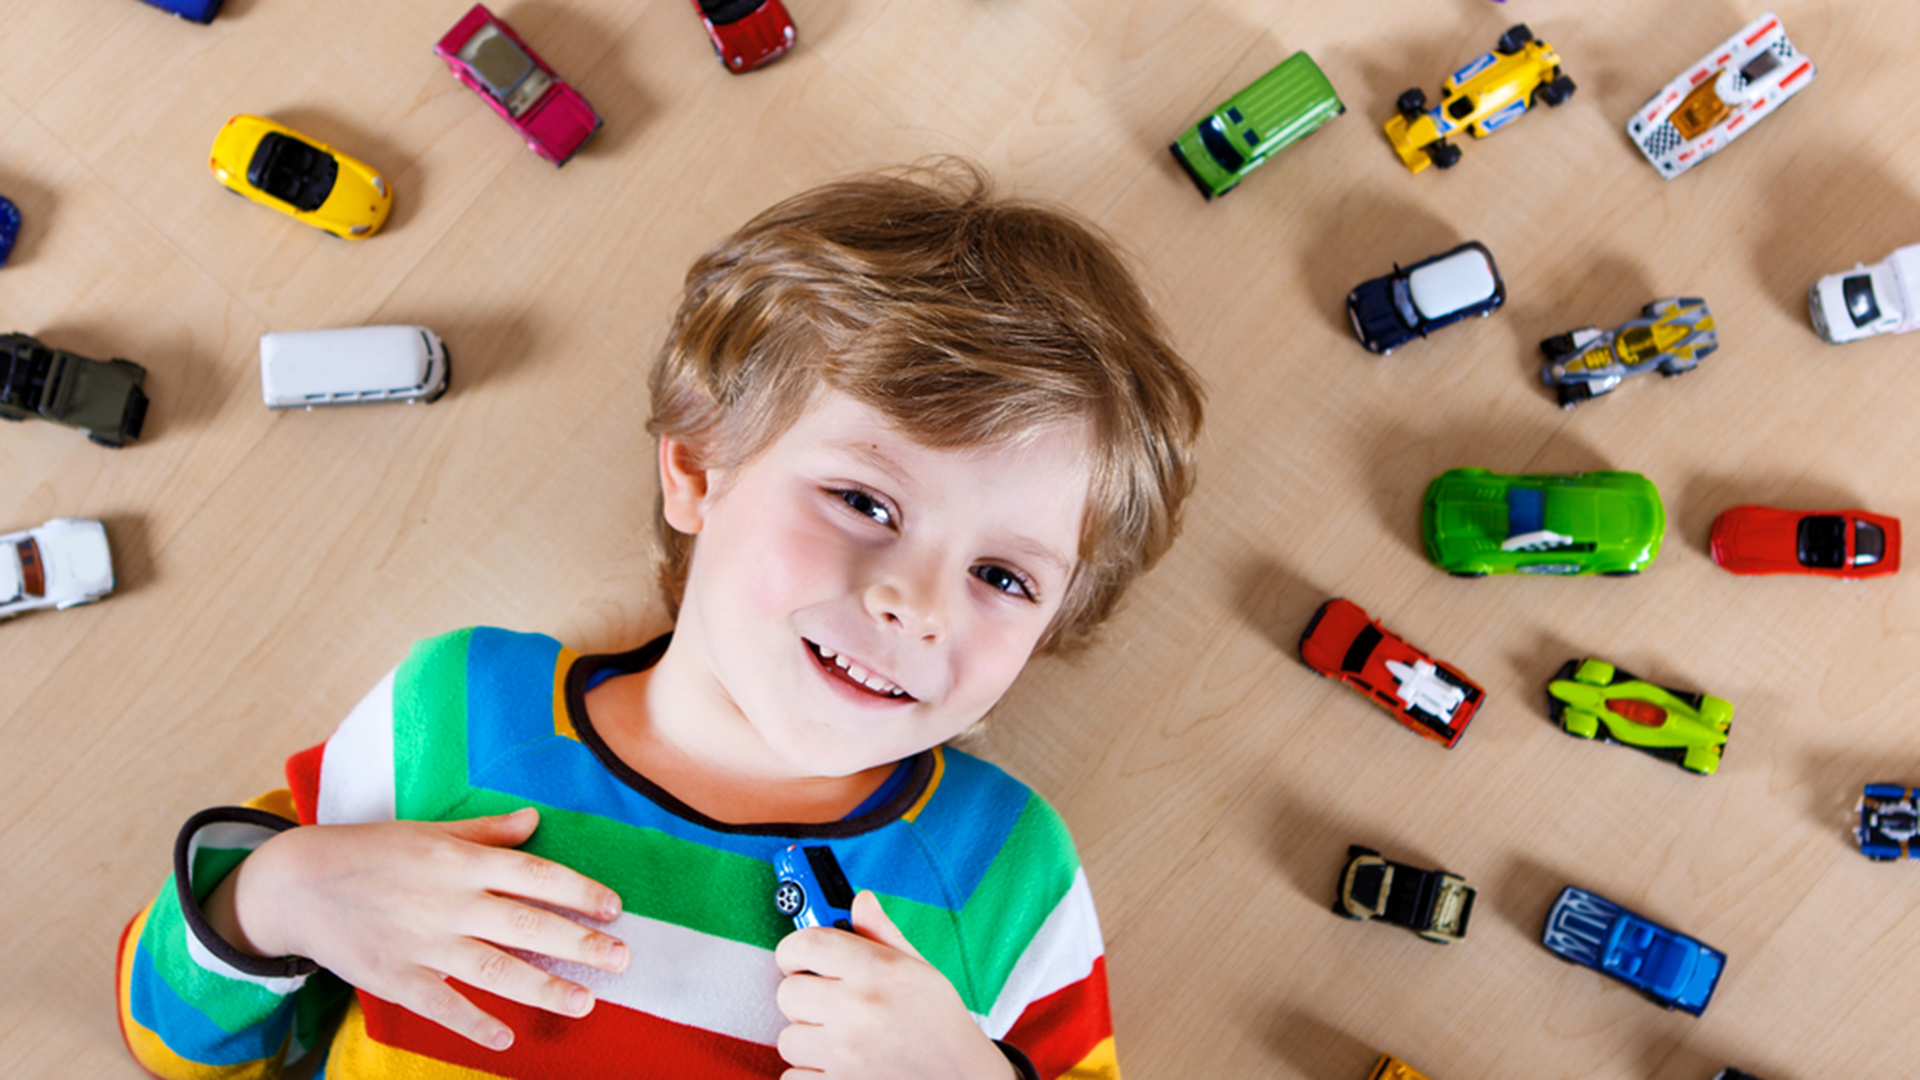 Best Toys For Boys Ever : Enter today s toy challenge to help us find the best